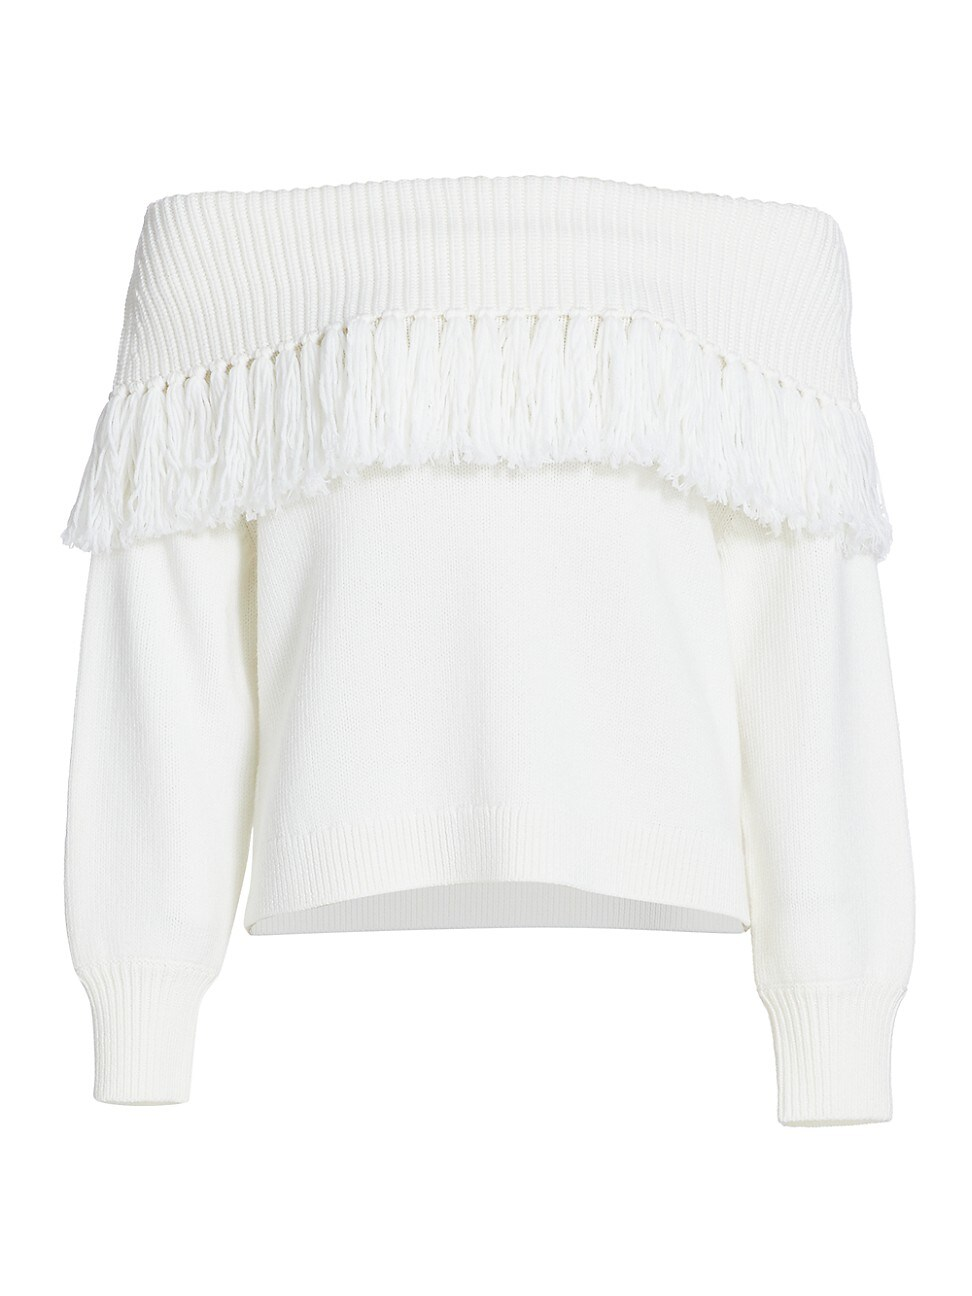 Alice And Olivia WOMEN'S BARDOT FRINGE OFF-THE-SHOULDER TOP